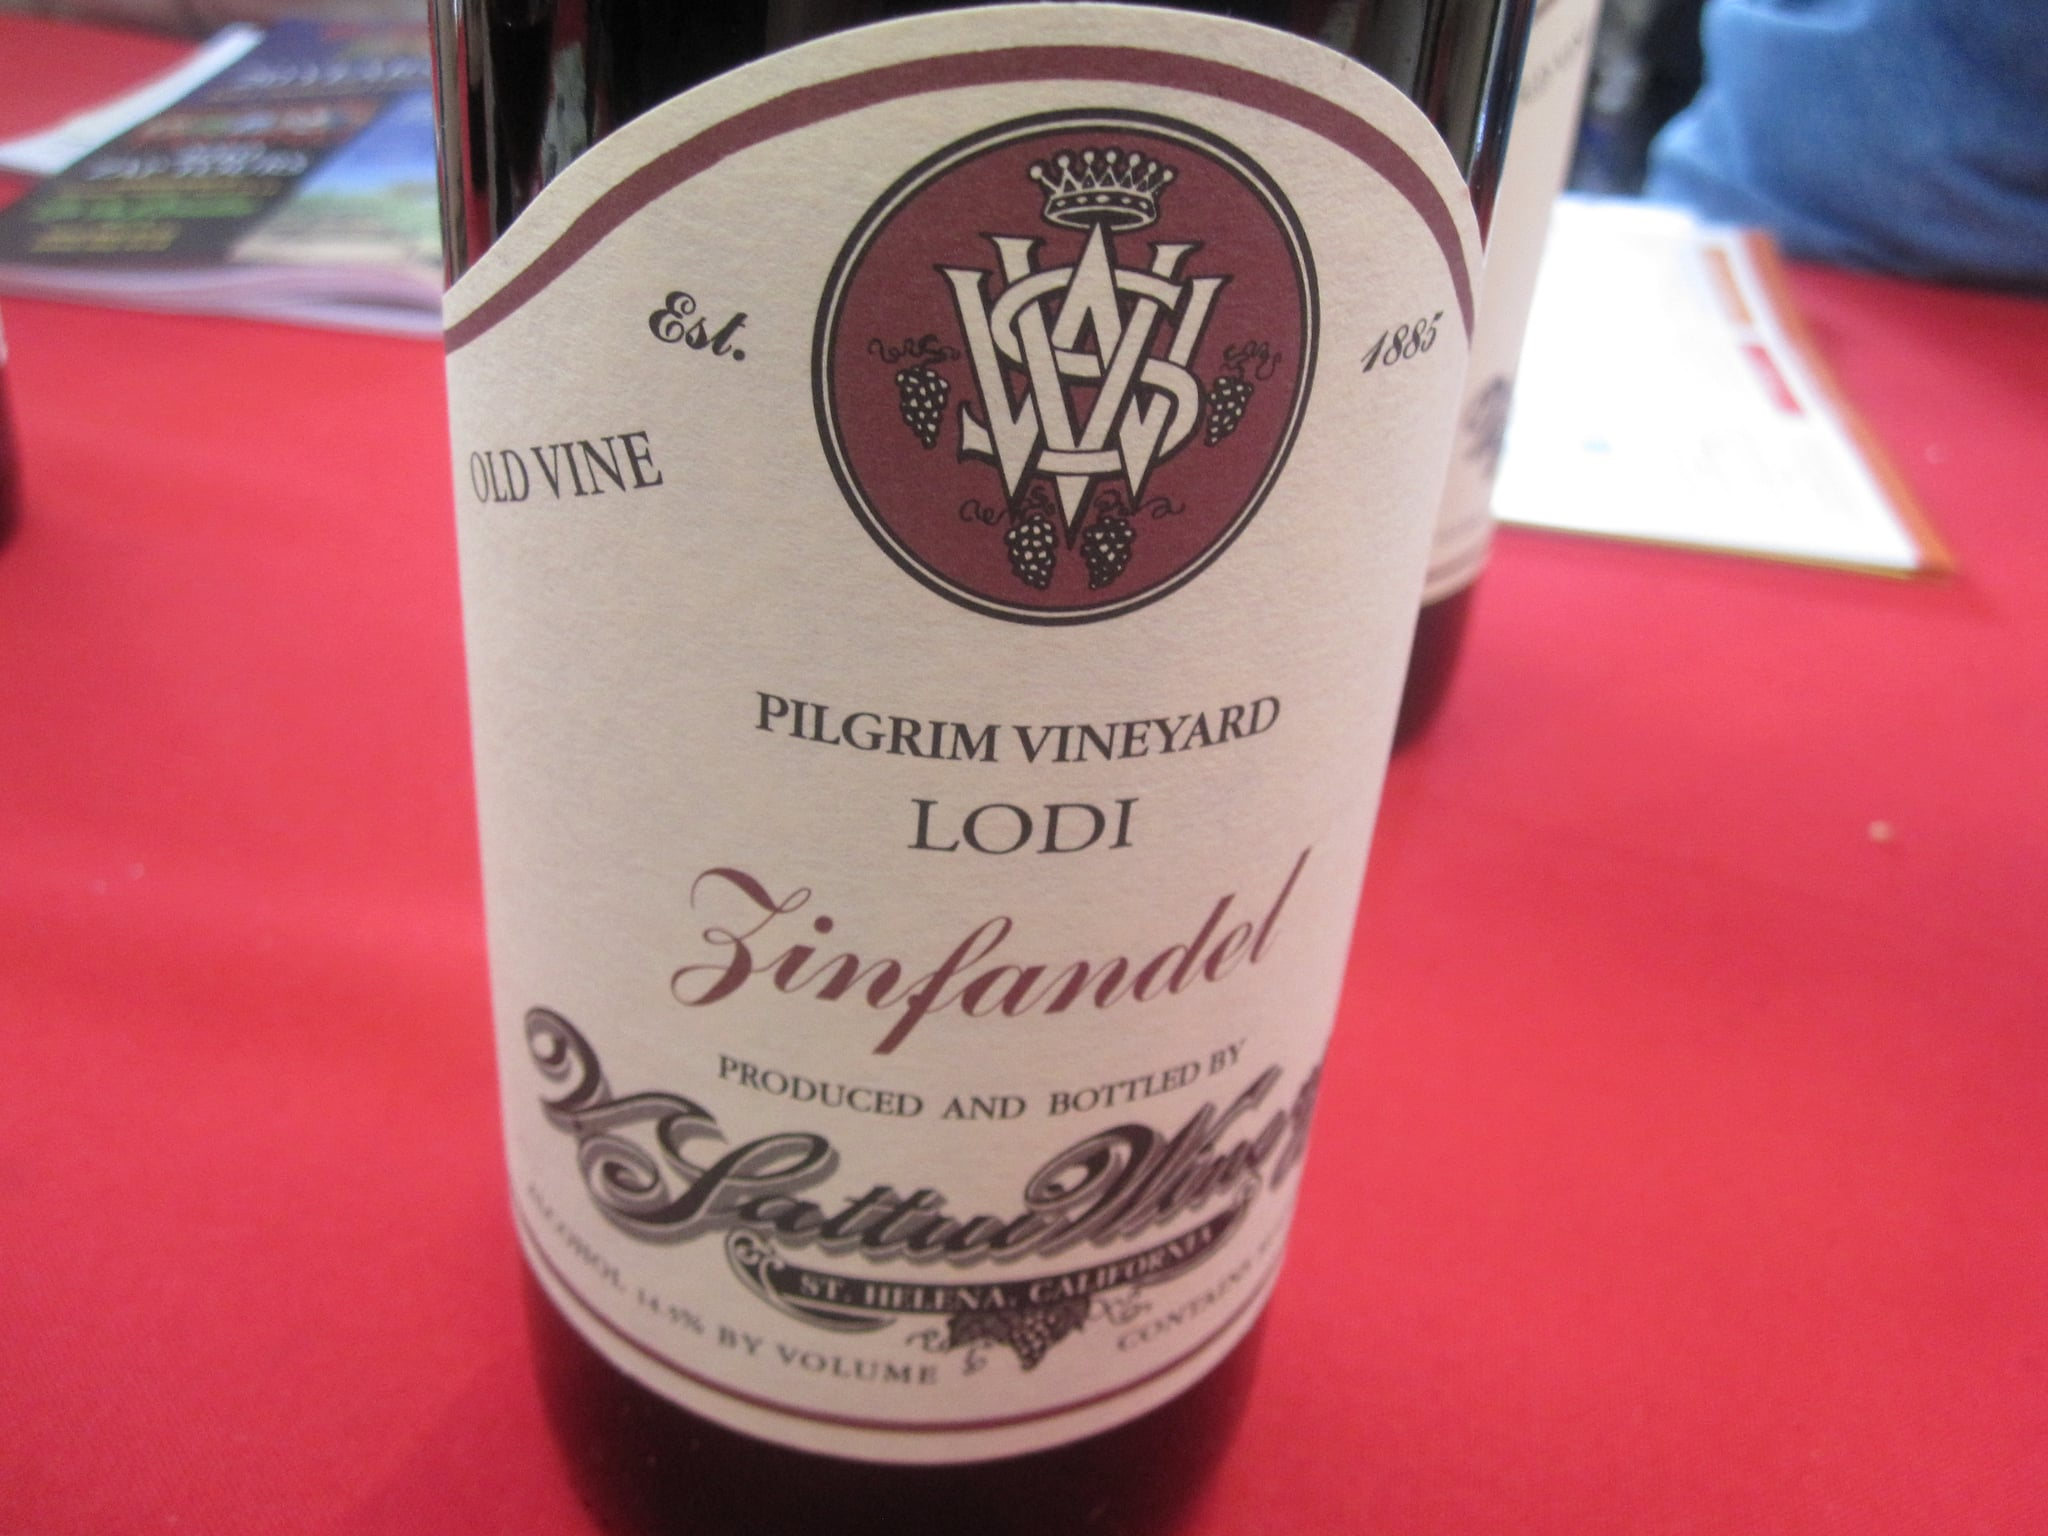 Another delightful taste came from Pilgrim Vineyard.